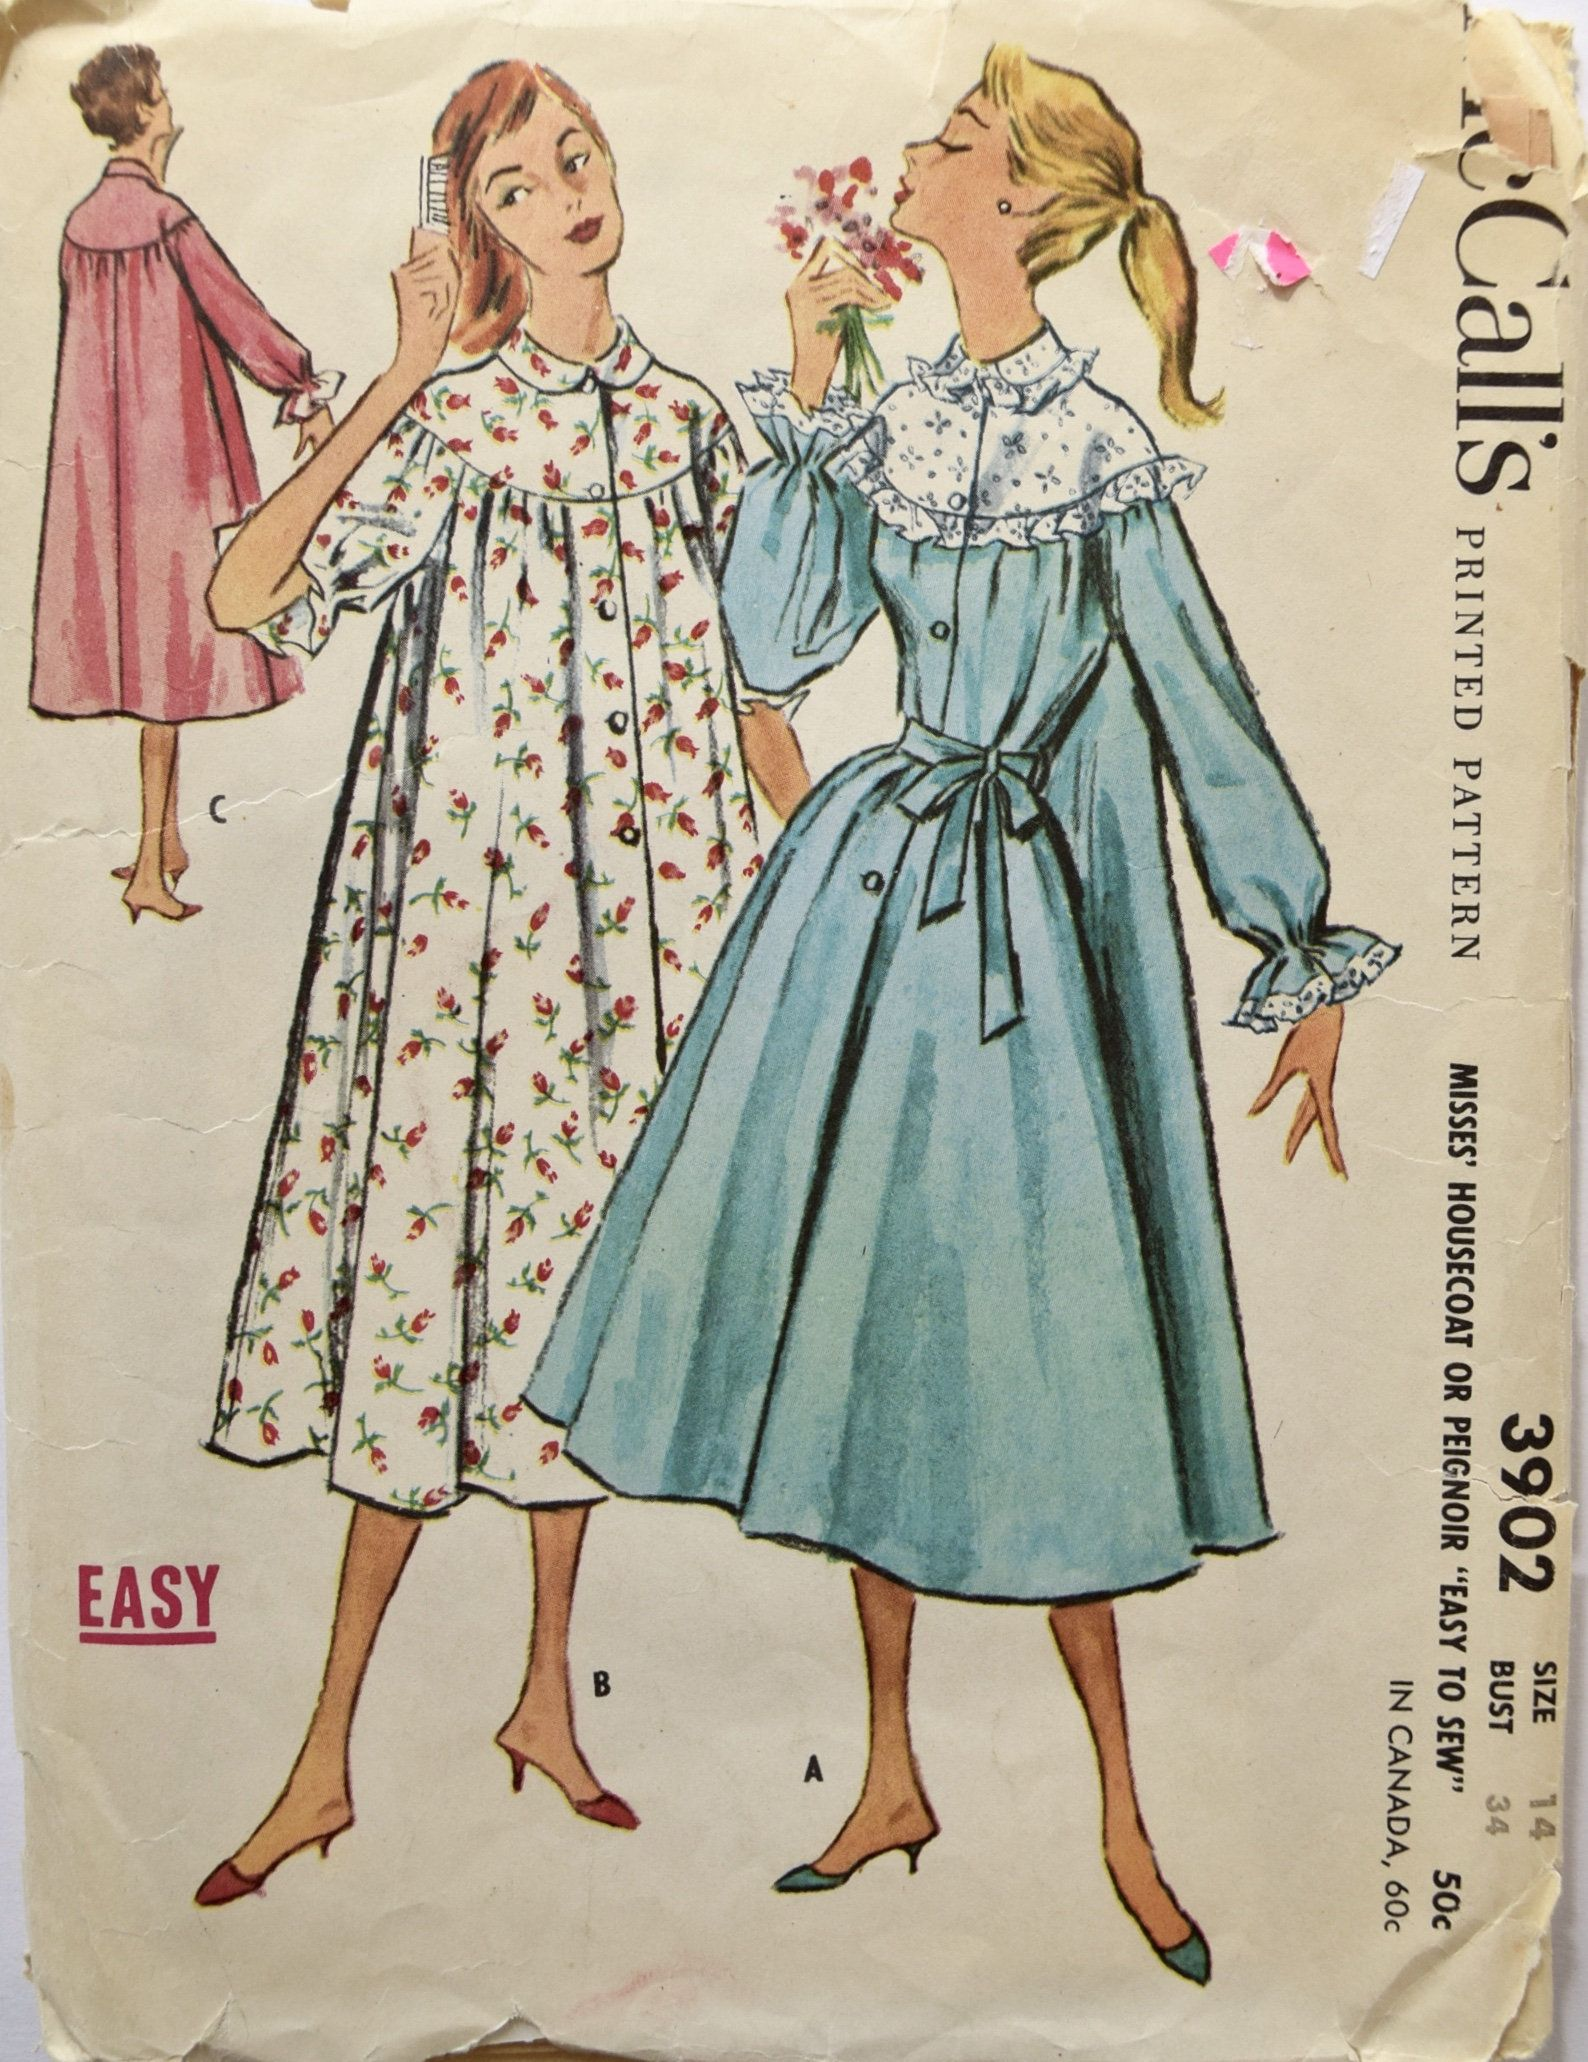 Mccalls 3902 Sewing Pattern 1950s Housecoat Peignoir Pattern Etsy Mccalls Patterns Dress 1950s Dress Patterns Mccalls Sewing Patterns